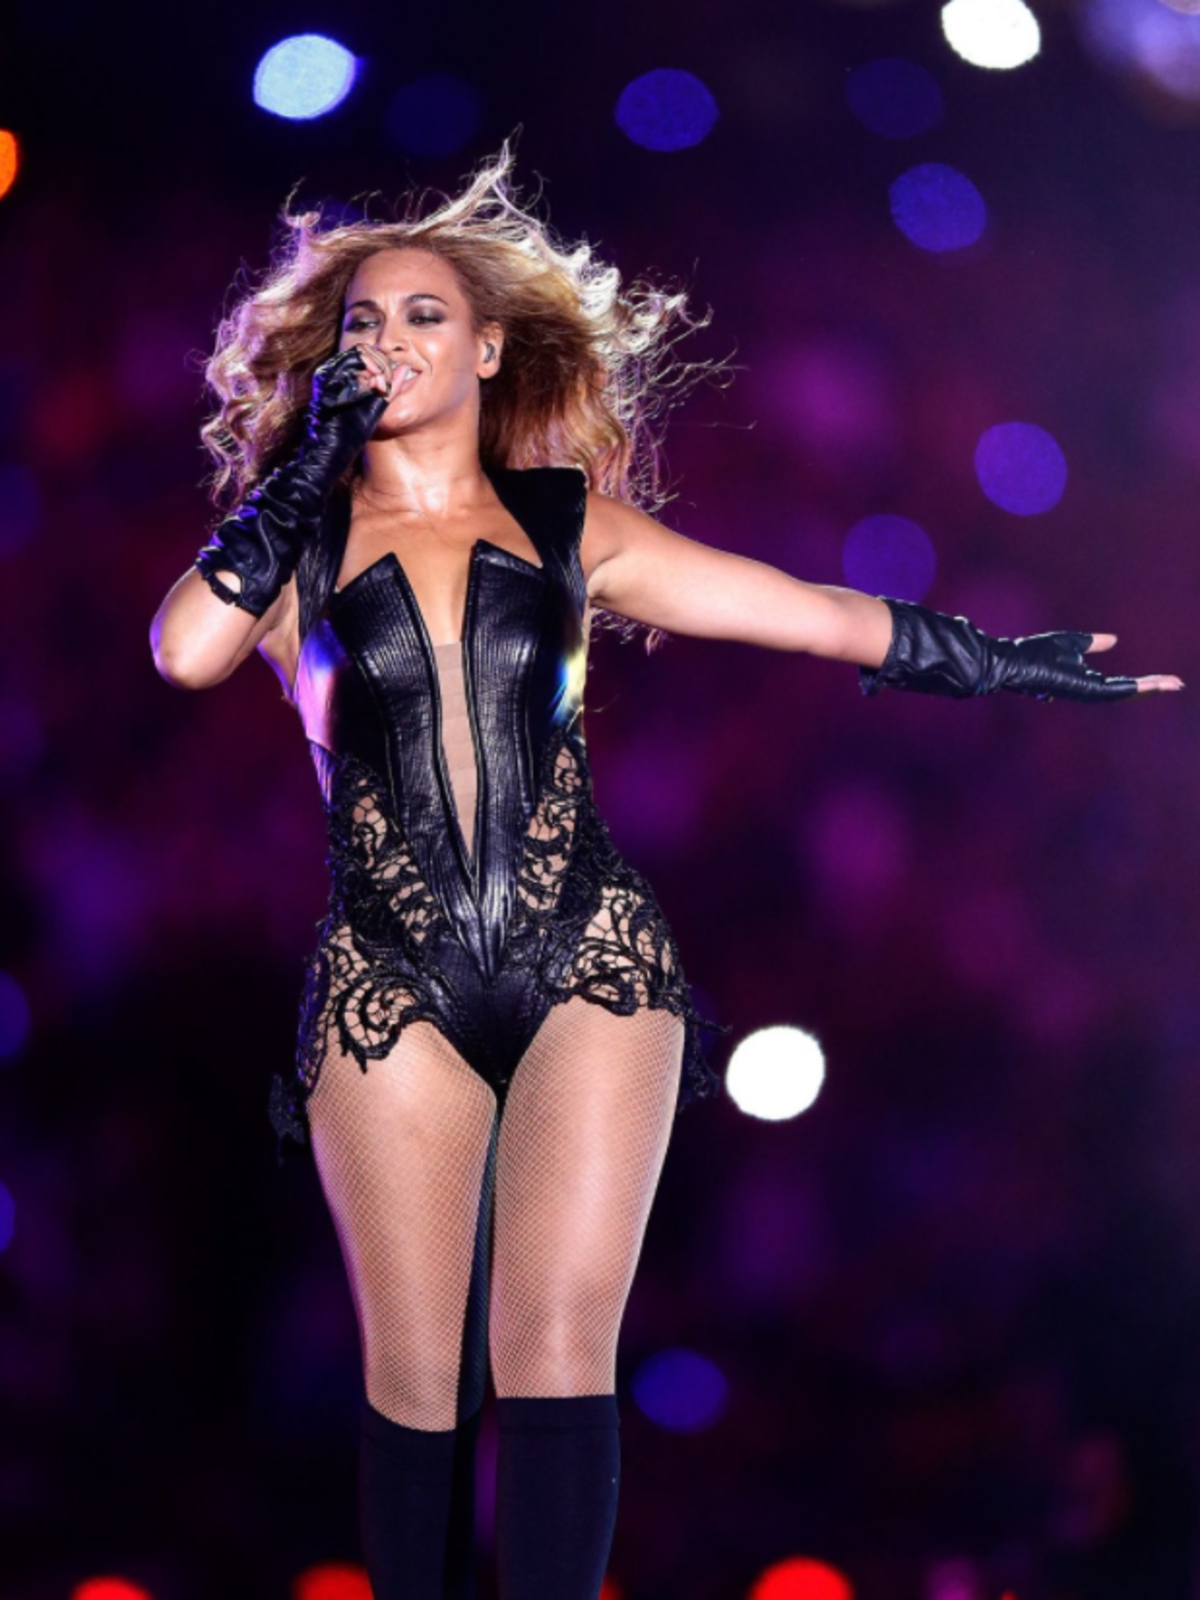 Beyonce in Rubin Singer outfit at 2013 Super Bowl